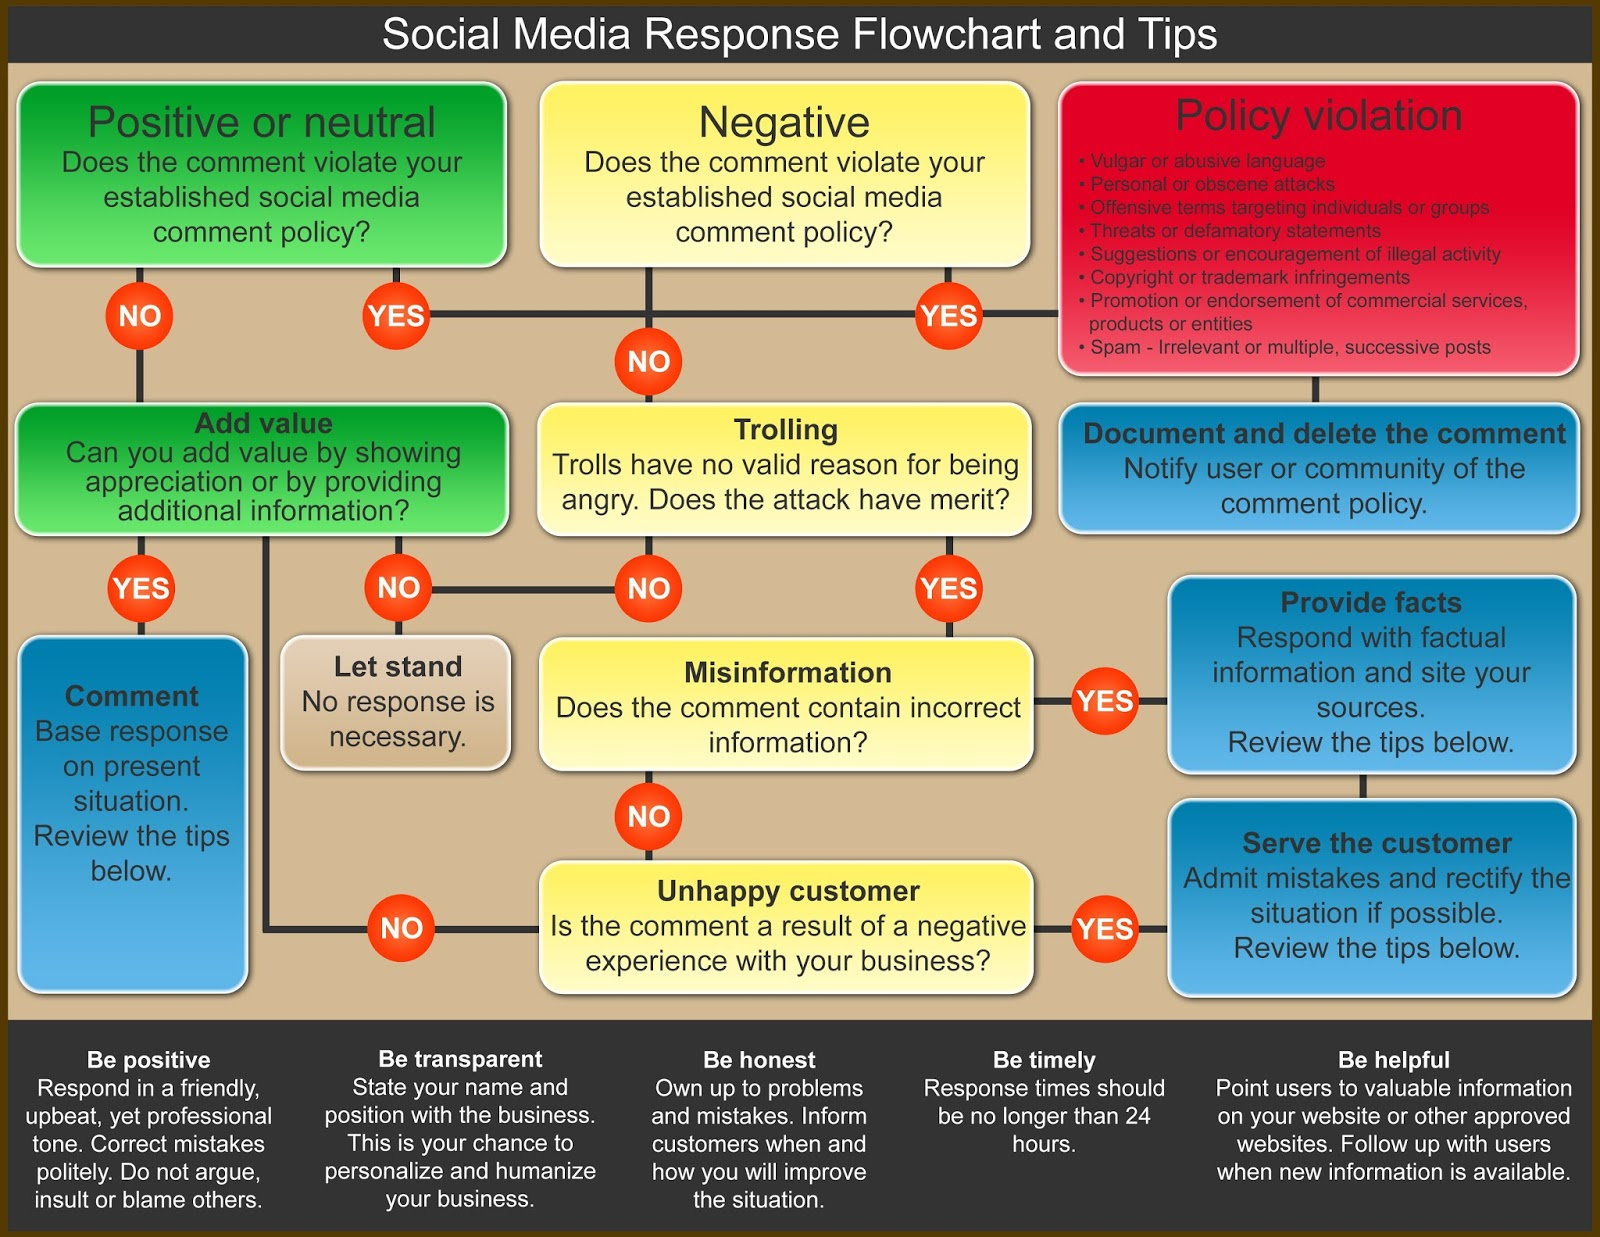 New york sbdc research network social media response flow chart social media response flow chart for small businesses nvjuhfo Choice Image